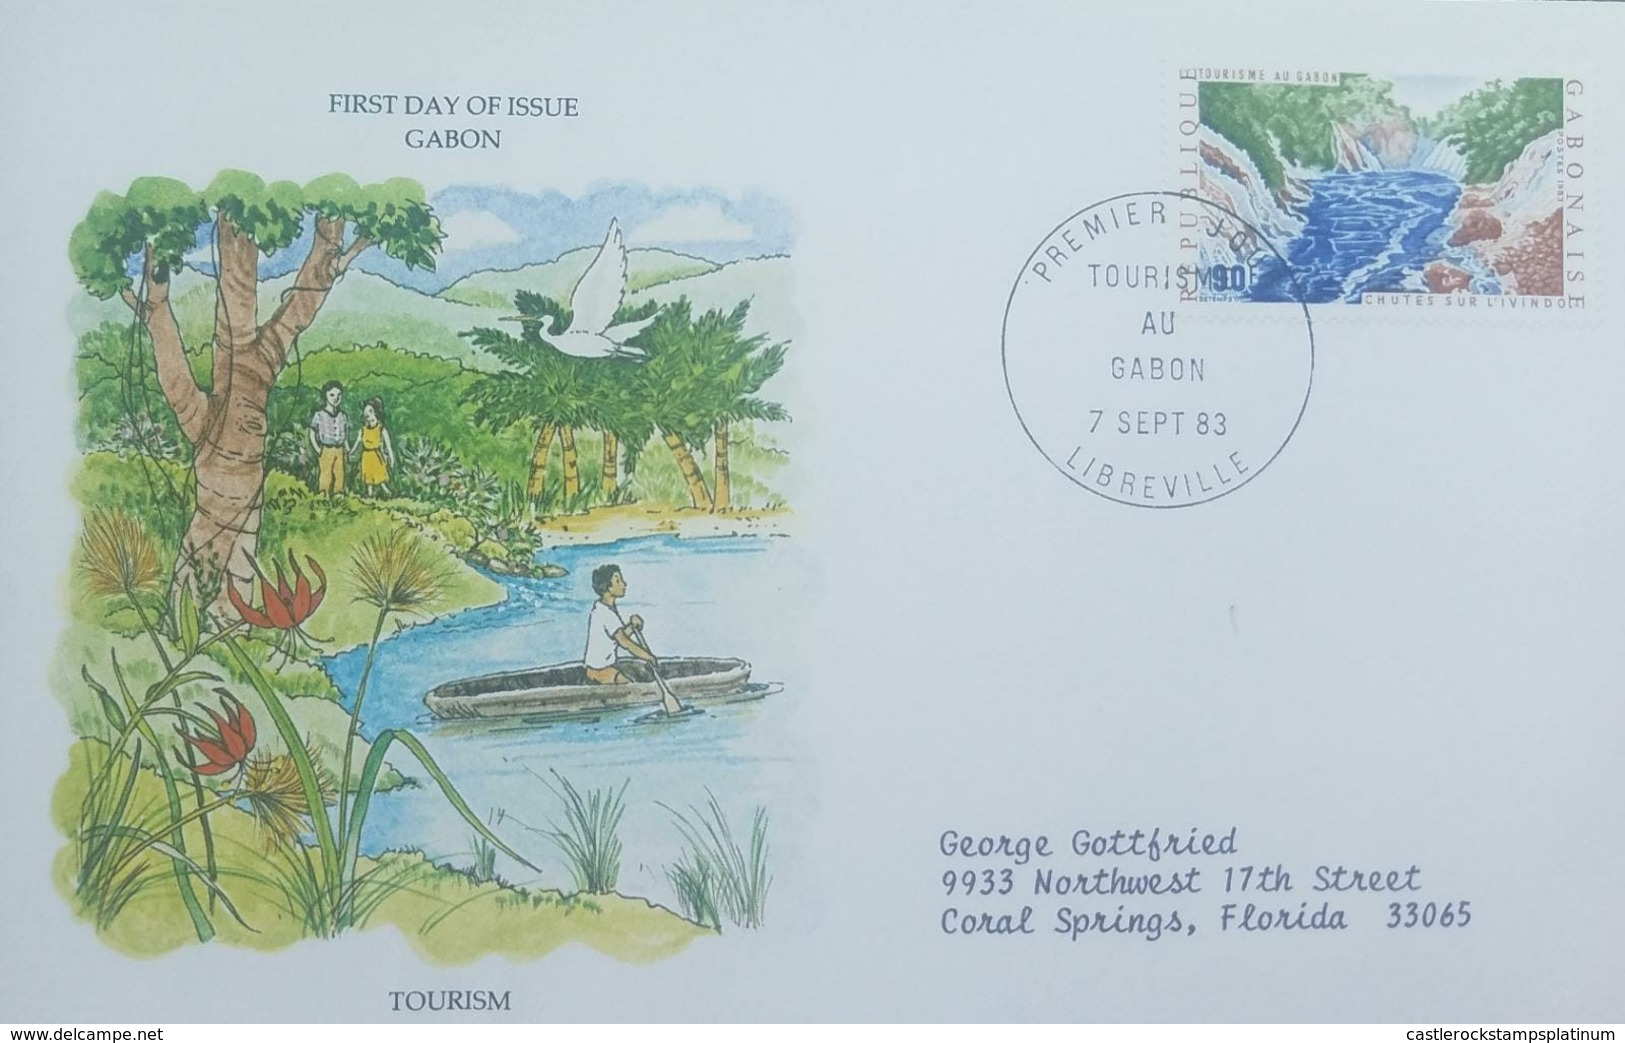 L) 1983 GABON, TOURISM, NATURE, PEOPLE, BOAT, BIRD, PALM, TREE, RIVER, CIRCULATED COVER FROM GABON TO USA, FDC - Gabon